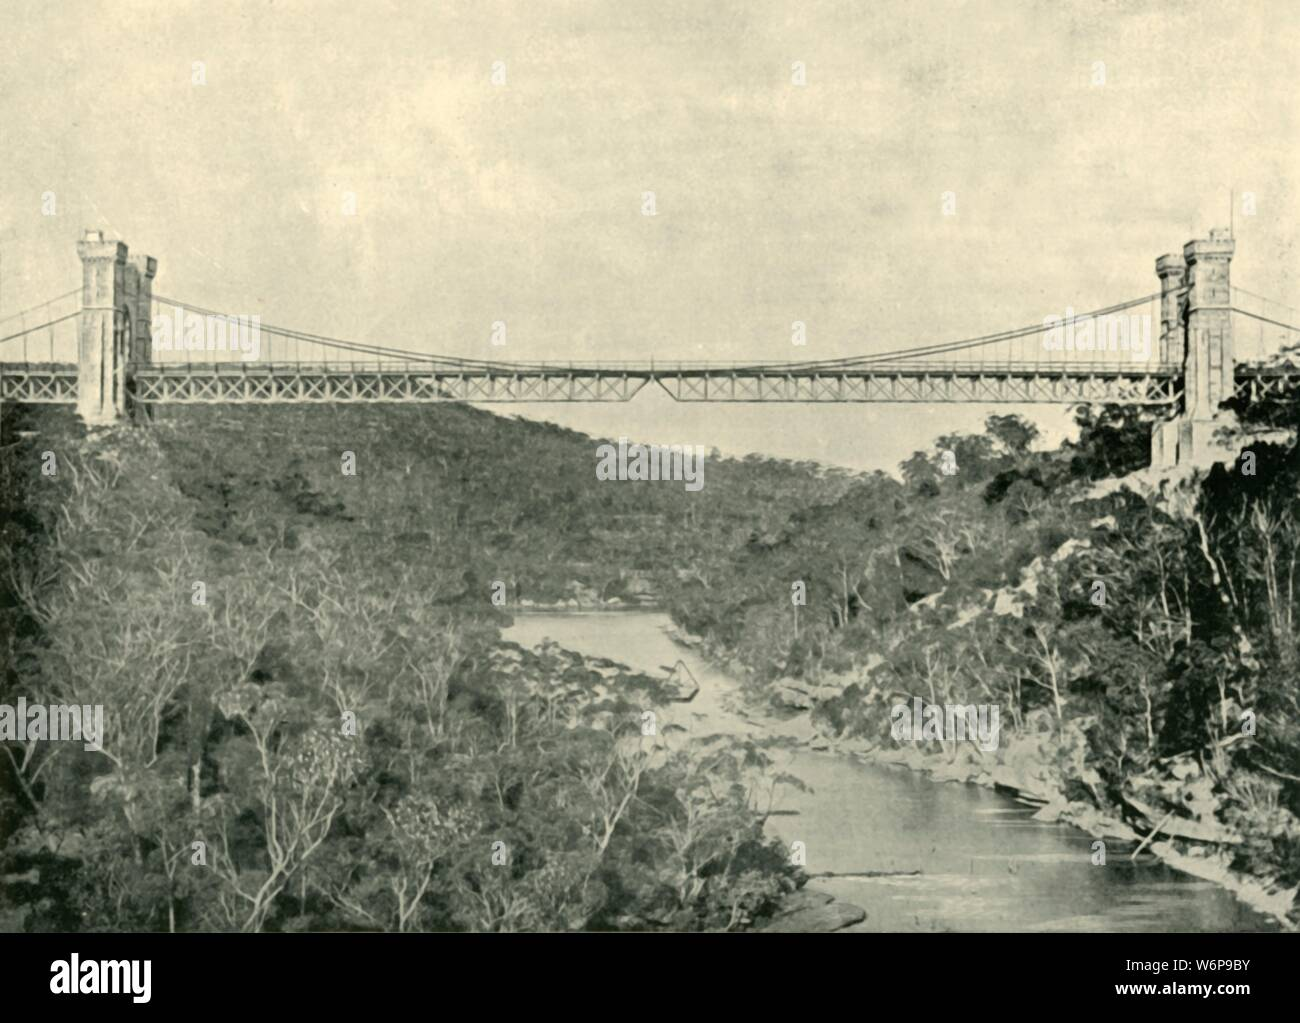 "'Suspension Bridge, North Sydney', 1901. Suspension Bridge known as the Long Gully Bridge, connecting Cammeray and Northbridge a suburb of Sydney over the  Murray River, built in 1889. From ""Federated Australia"". [The Werner Company, London, 1901] Stock Photo"